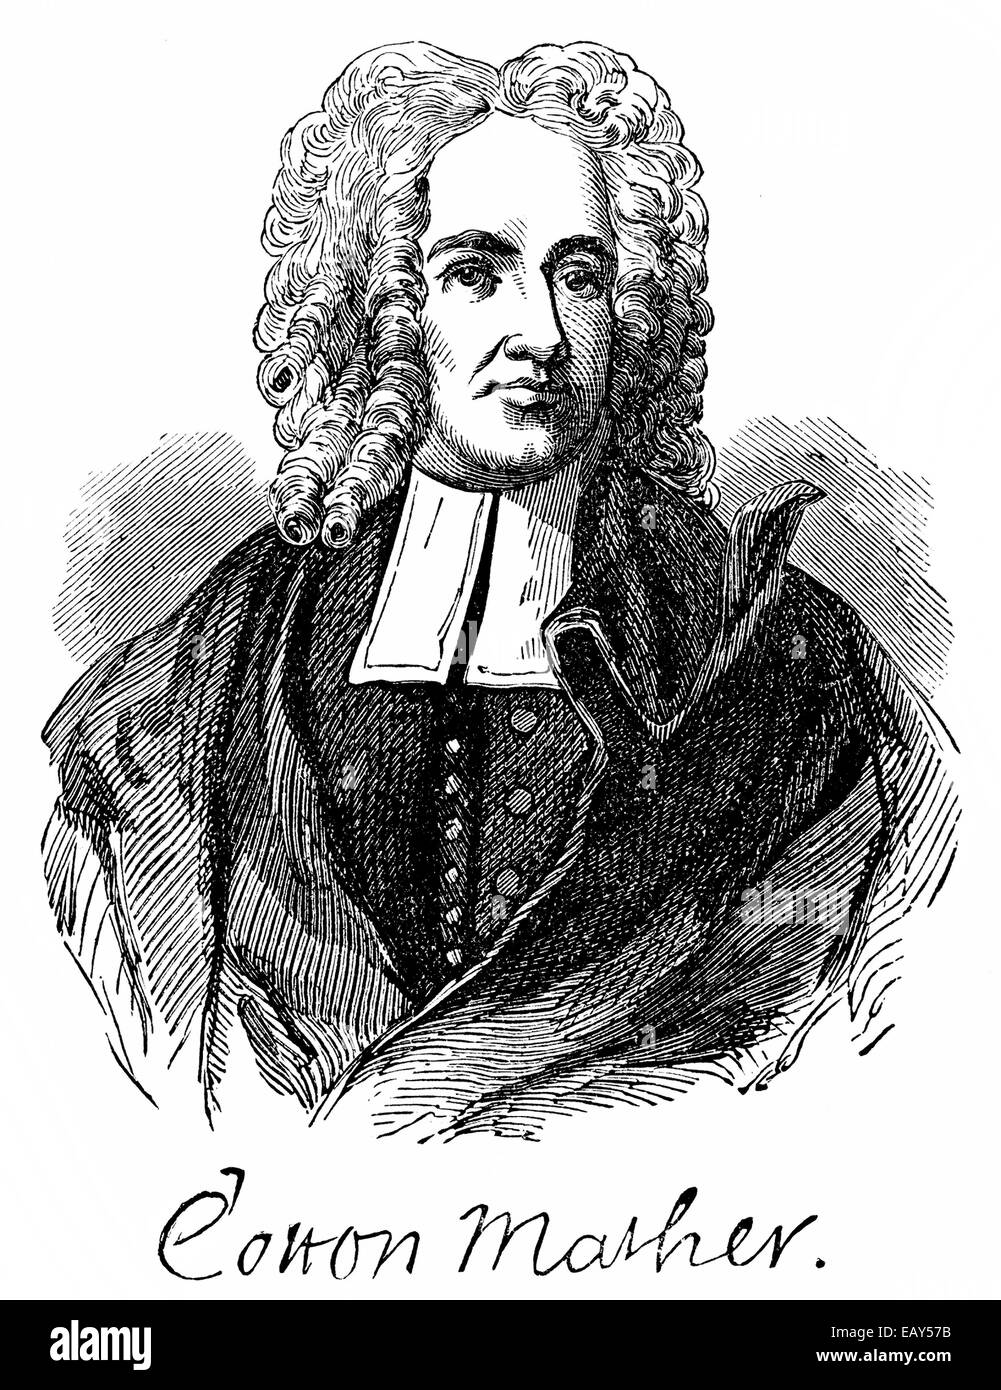 portrait of Cotton Mather, 1663 - 1728, a theologian, writer, Puritan preacher and church leaders of the New England - Stock Image